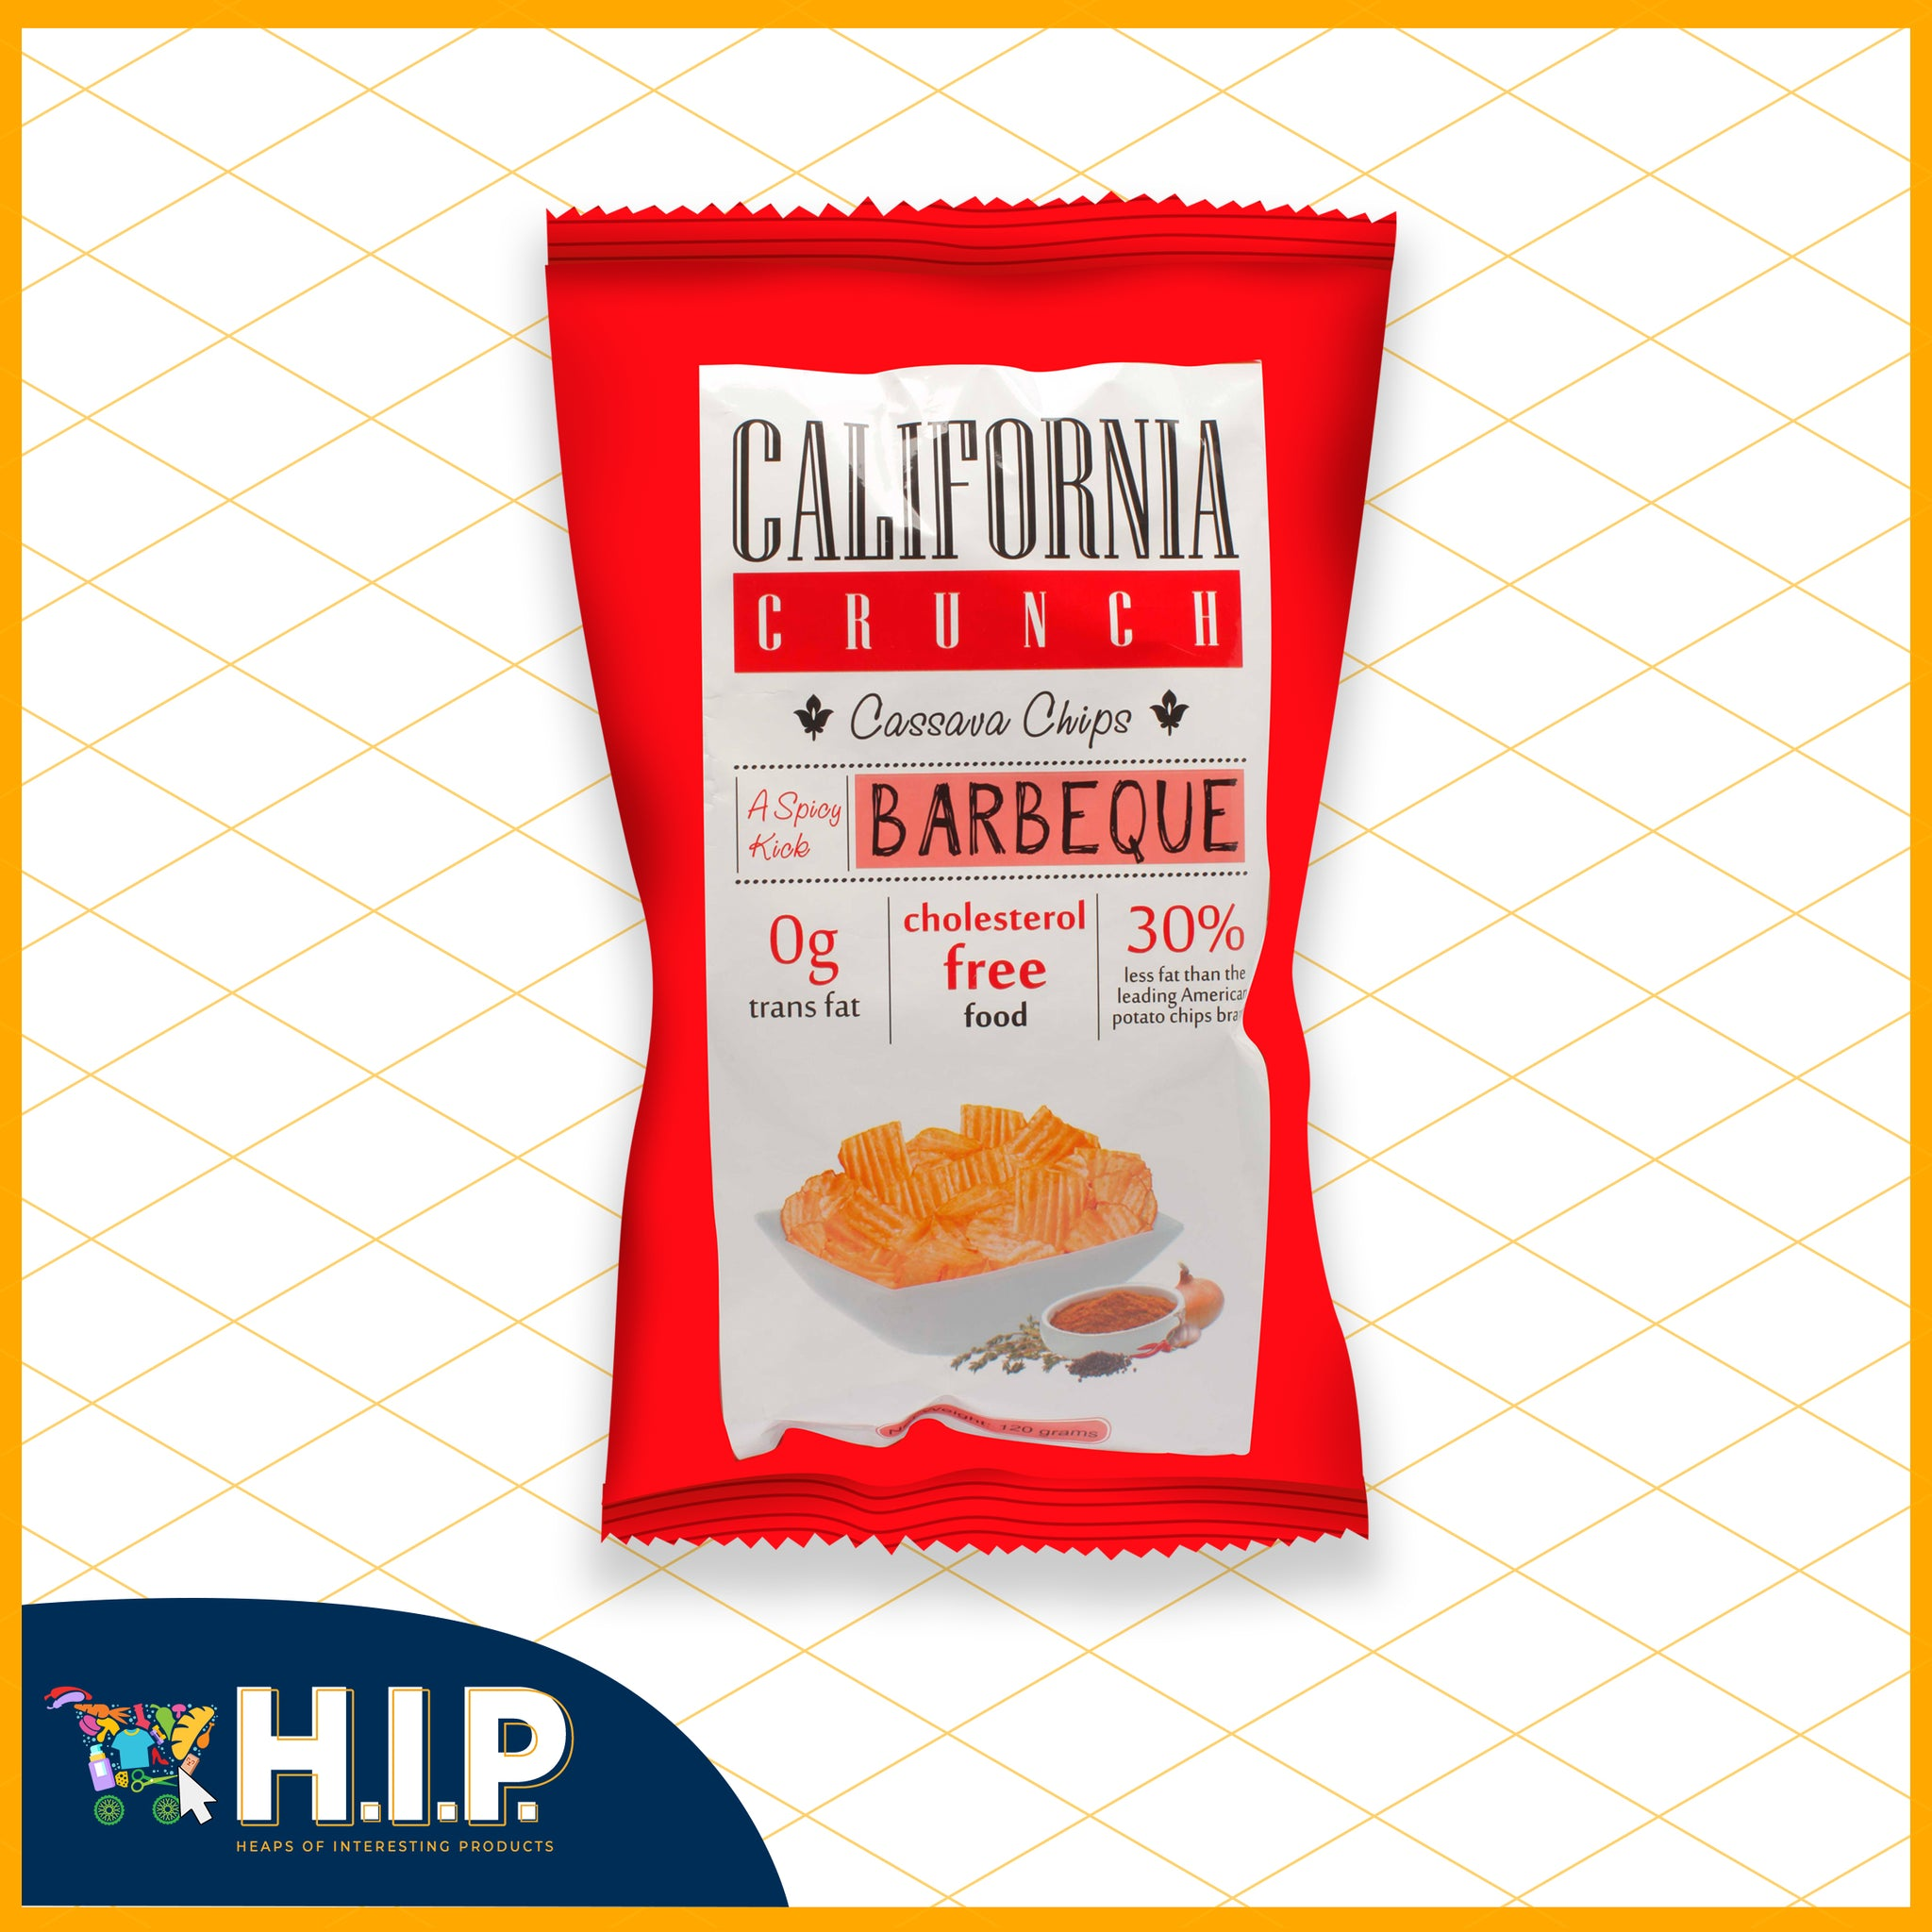 California Crunch Cassava Chips BBQ